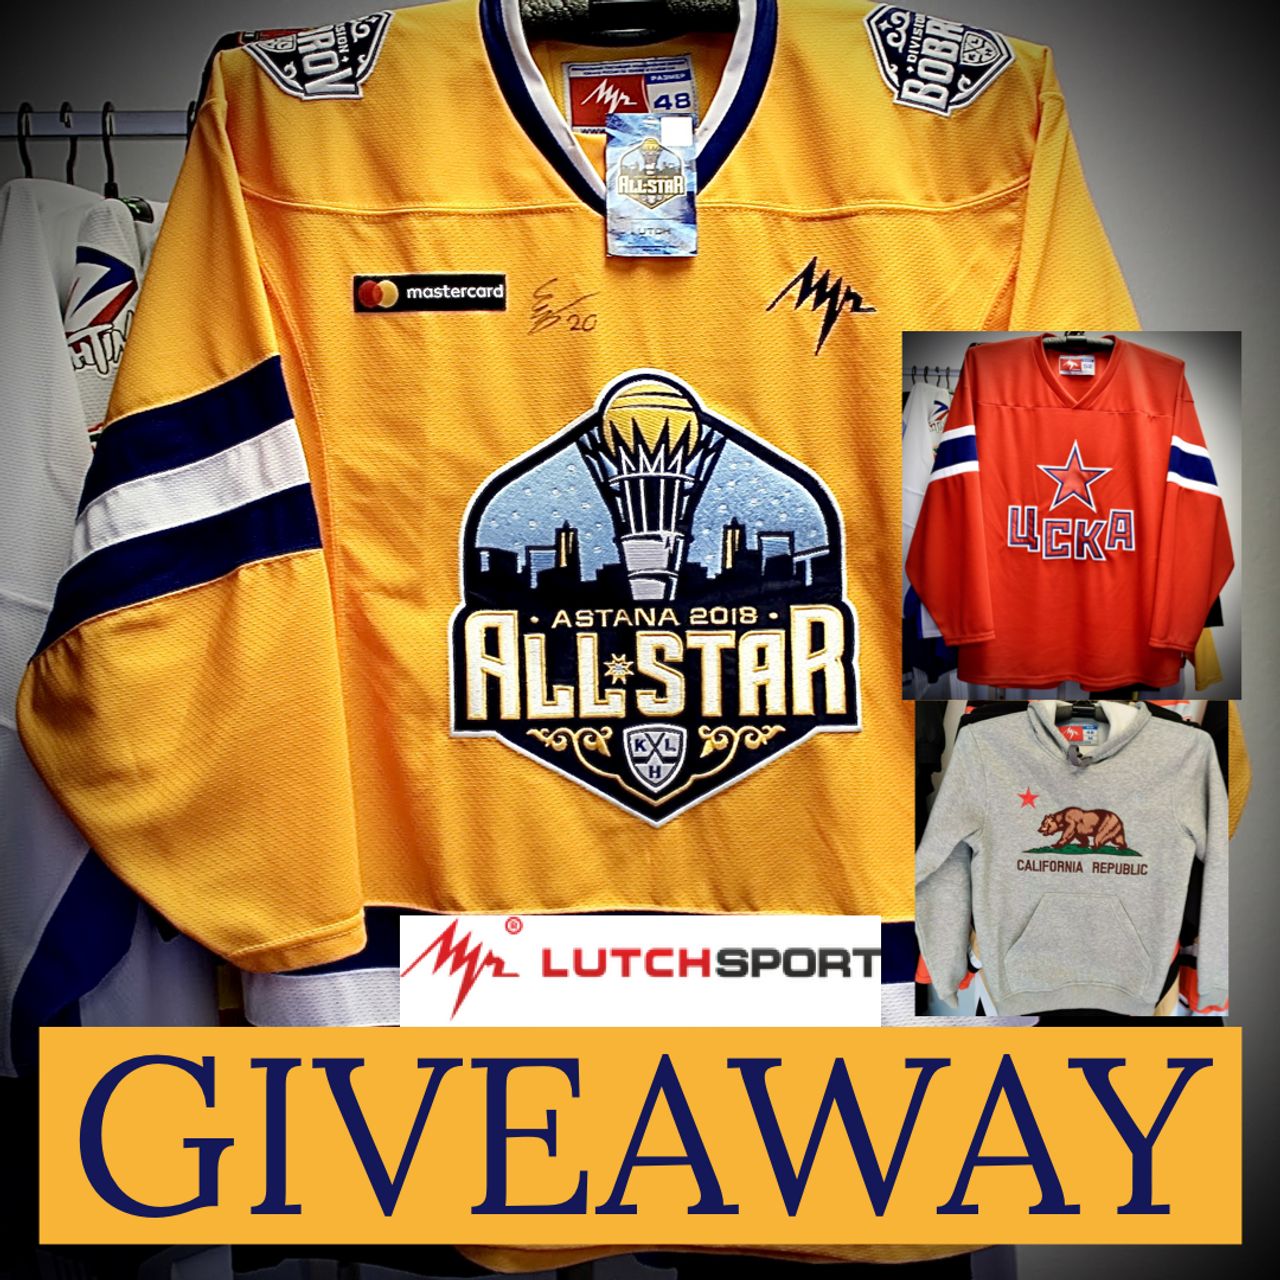 Signed Jersey Giveaway and More Prizes!